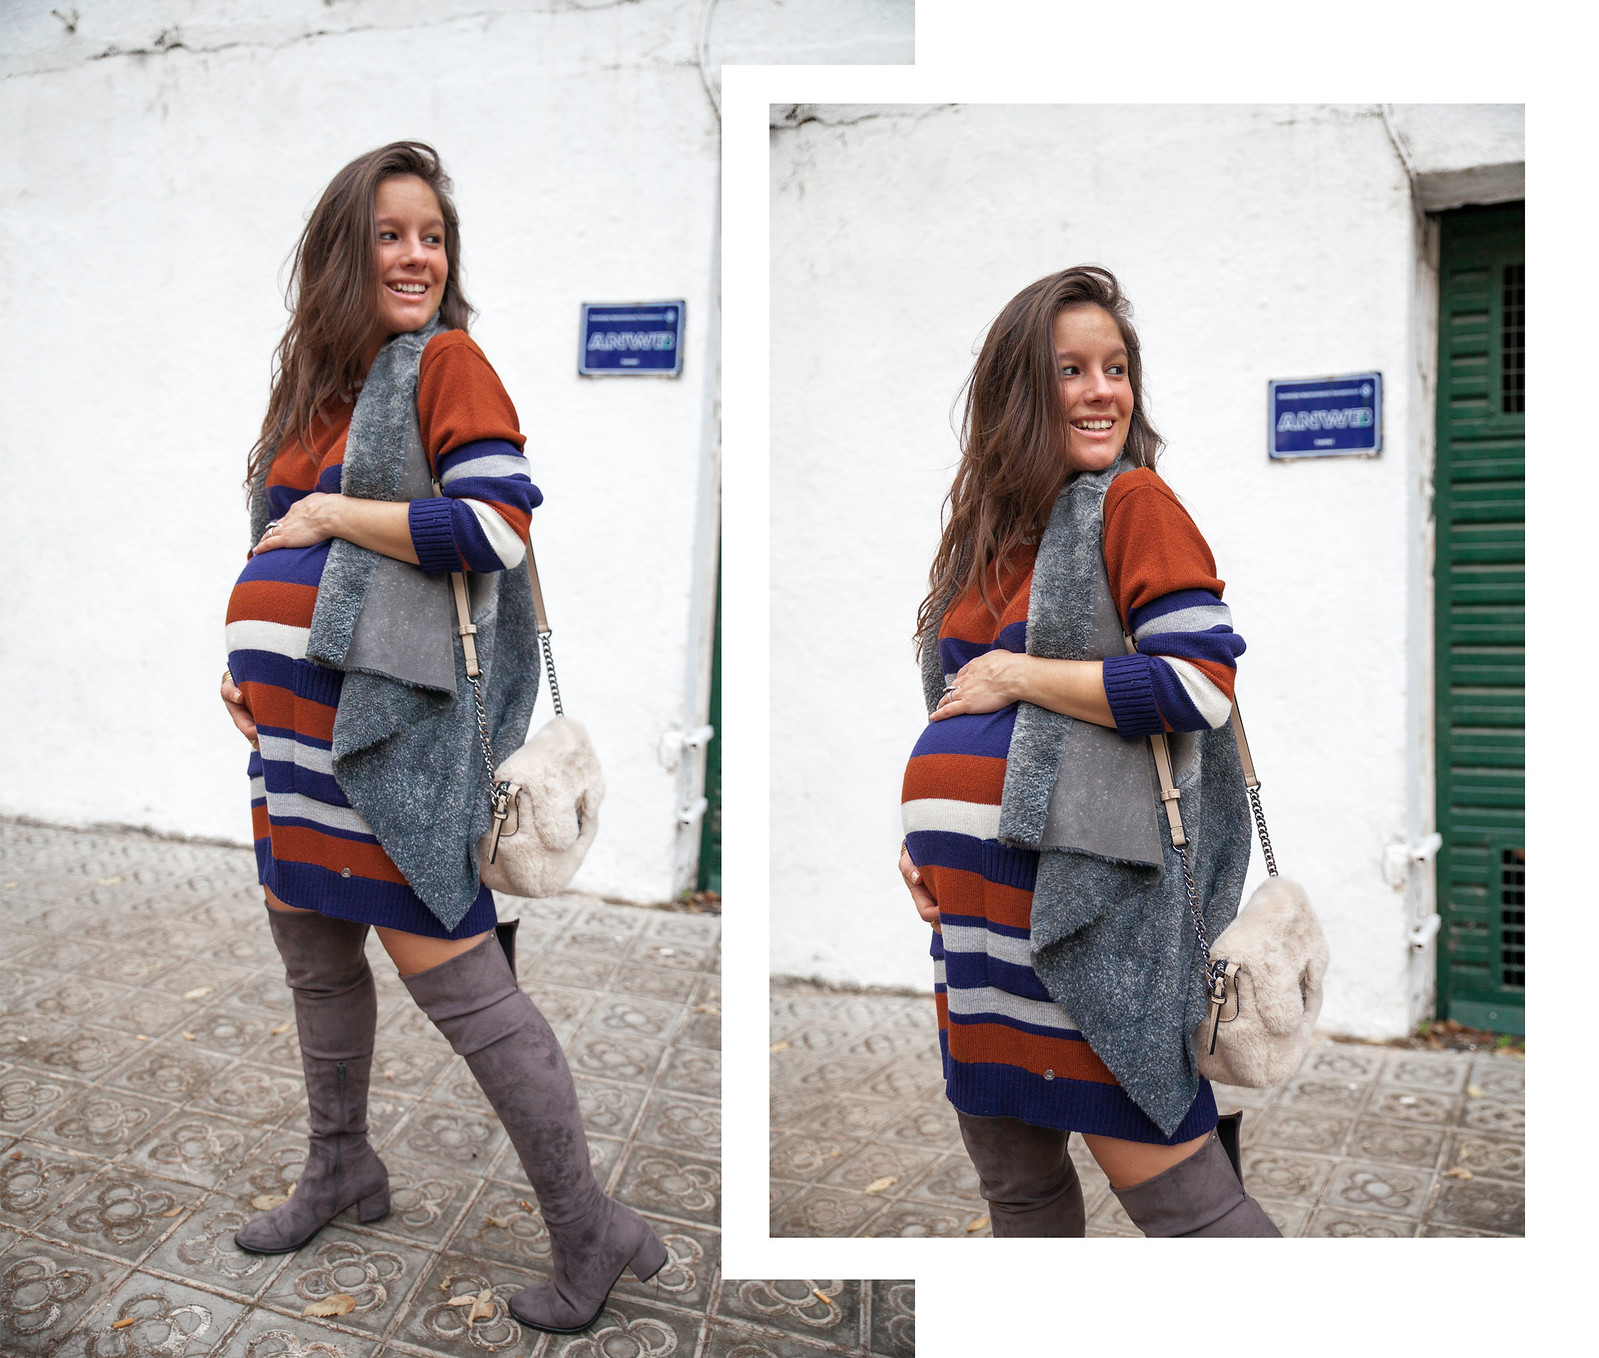 07_Vestido_rayas_punto_chaleco_look_embarazo_tercer_trimestre_theguestgirl_fashion_influencer_fashion_portugal_brand_ruga